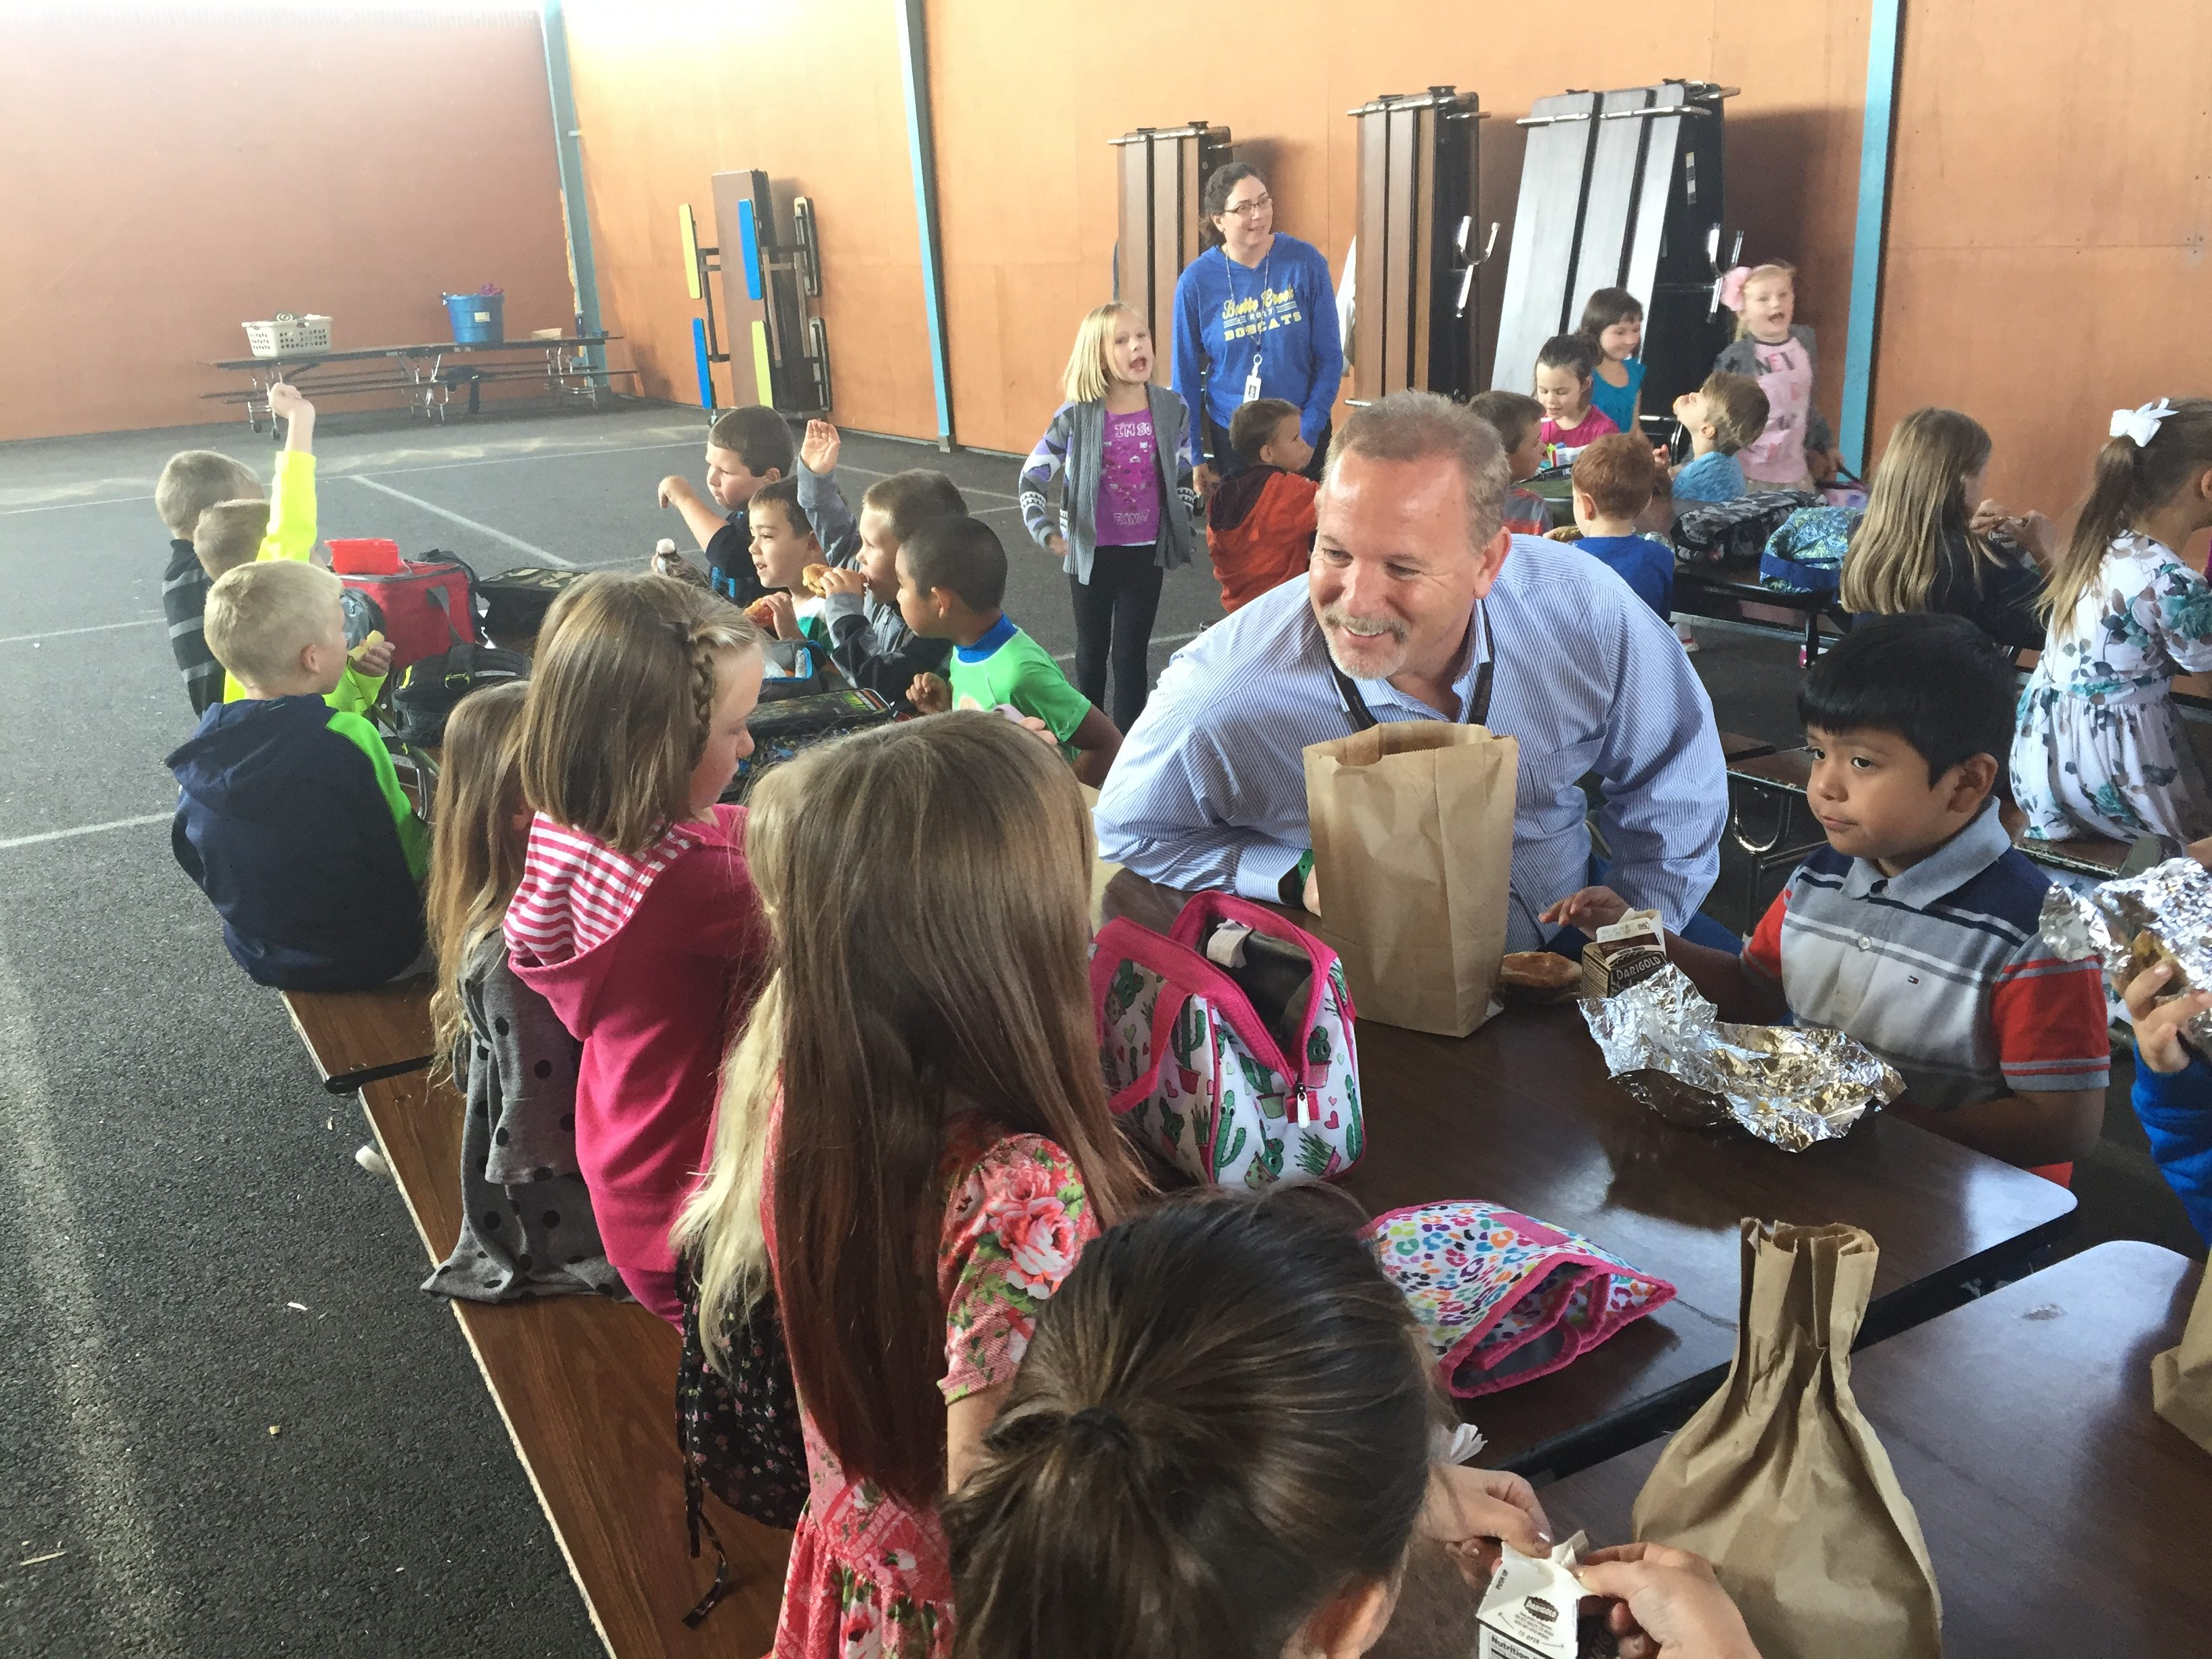 SFSD Superintendent Andy Bellando chats with students during lunch at Butte Creek Elementary School.